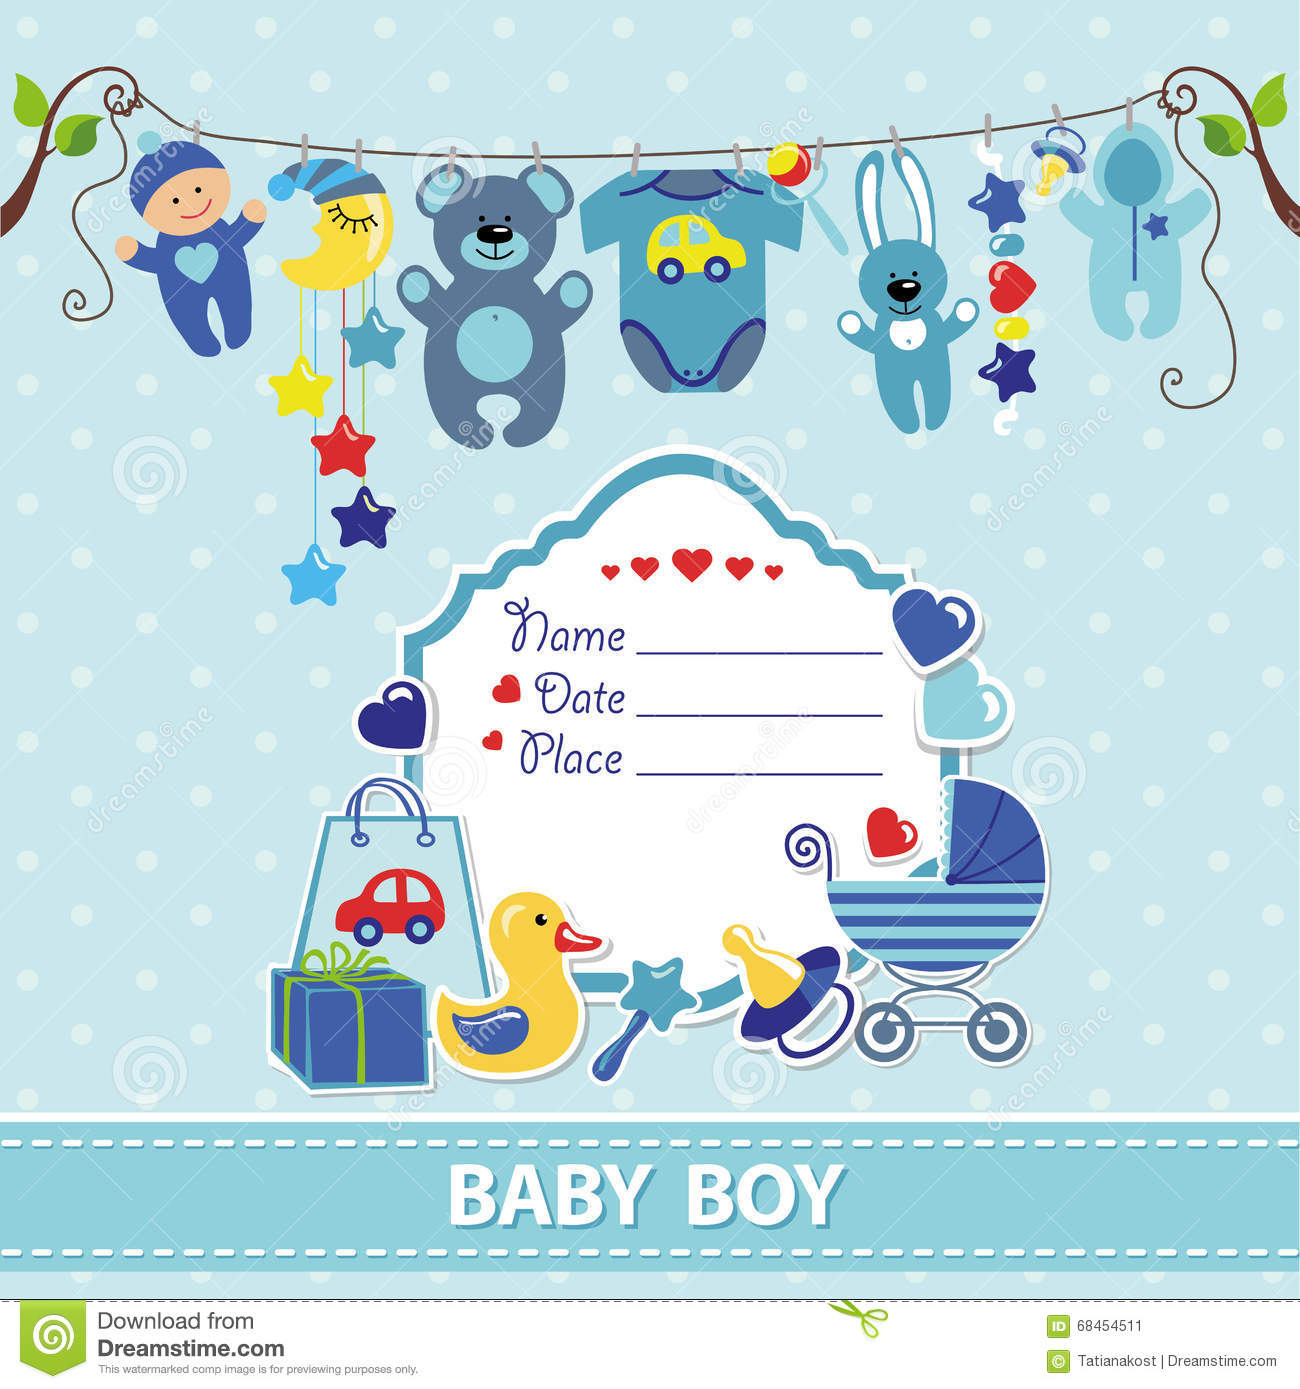 New born baby boy card shower invitation template stock vector new born baby boy card shower invitation template royalty free vector filmwisefo Gallery